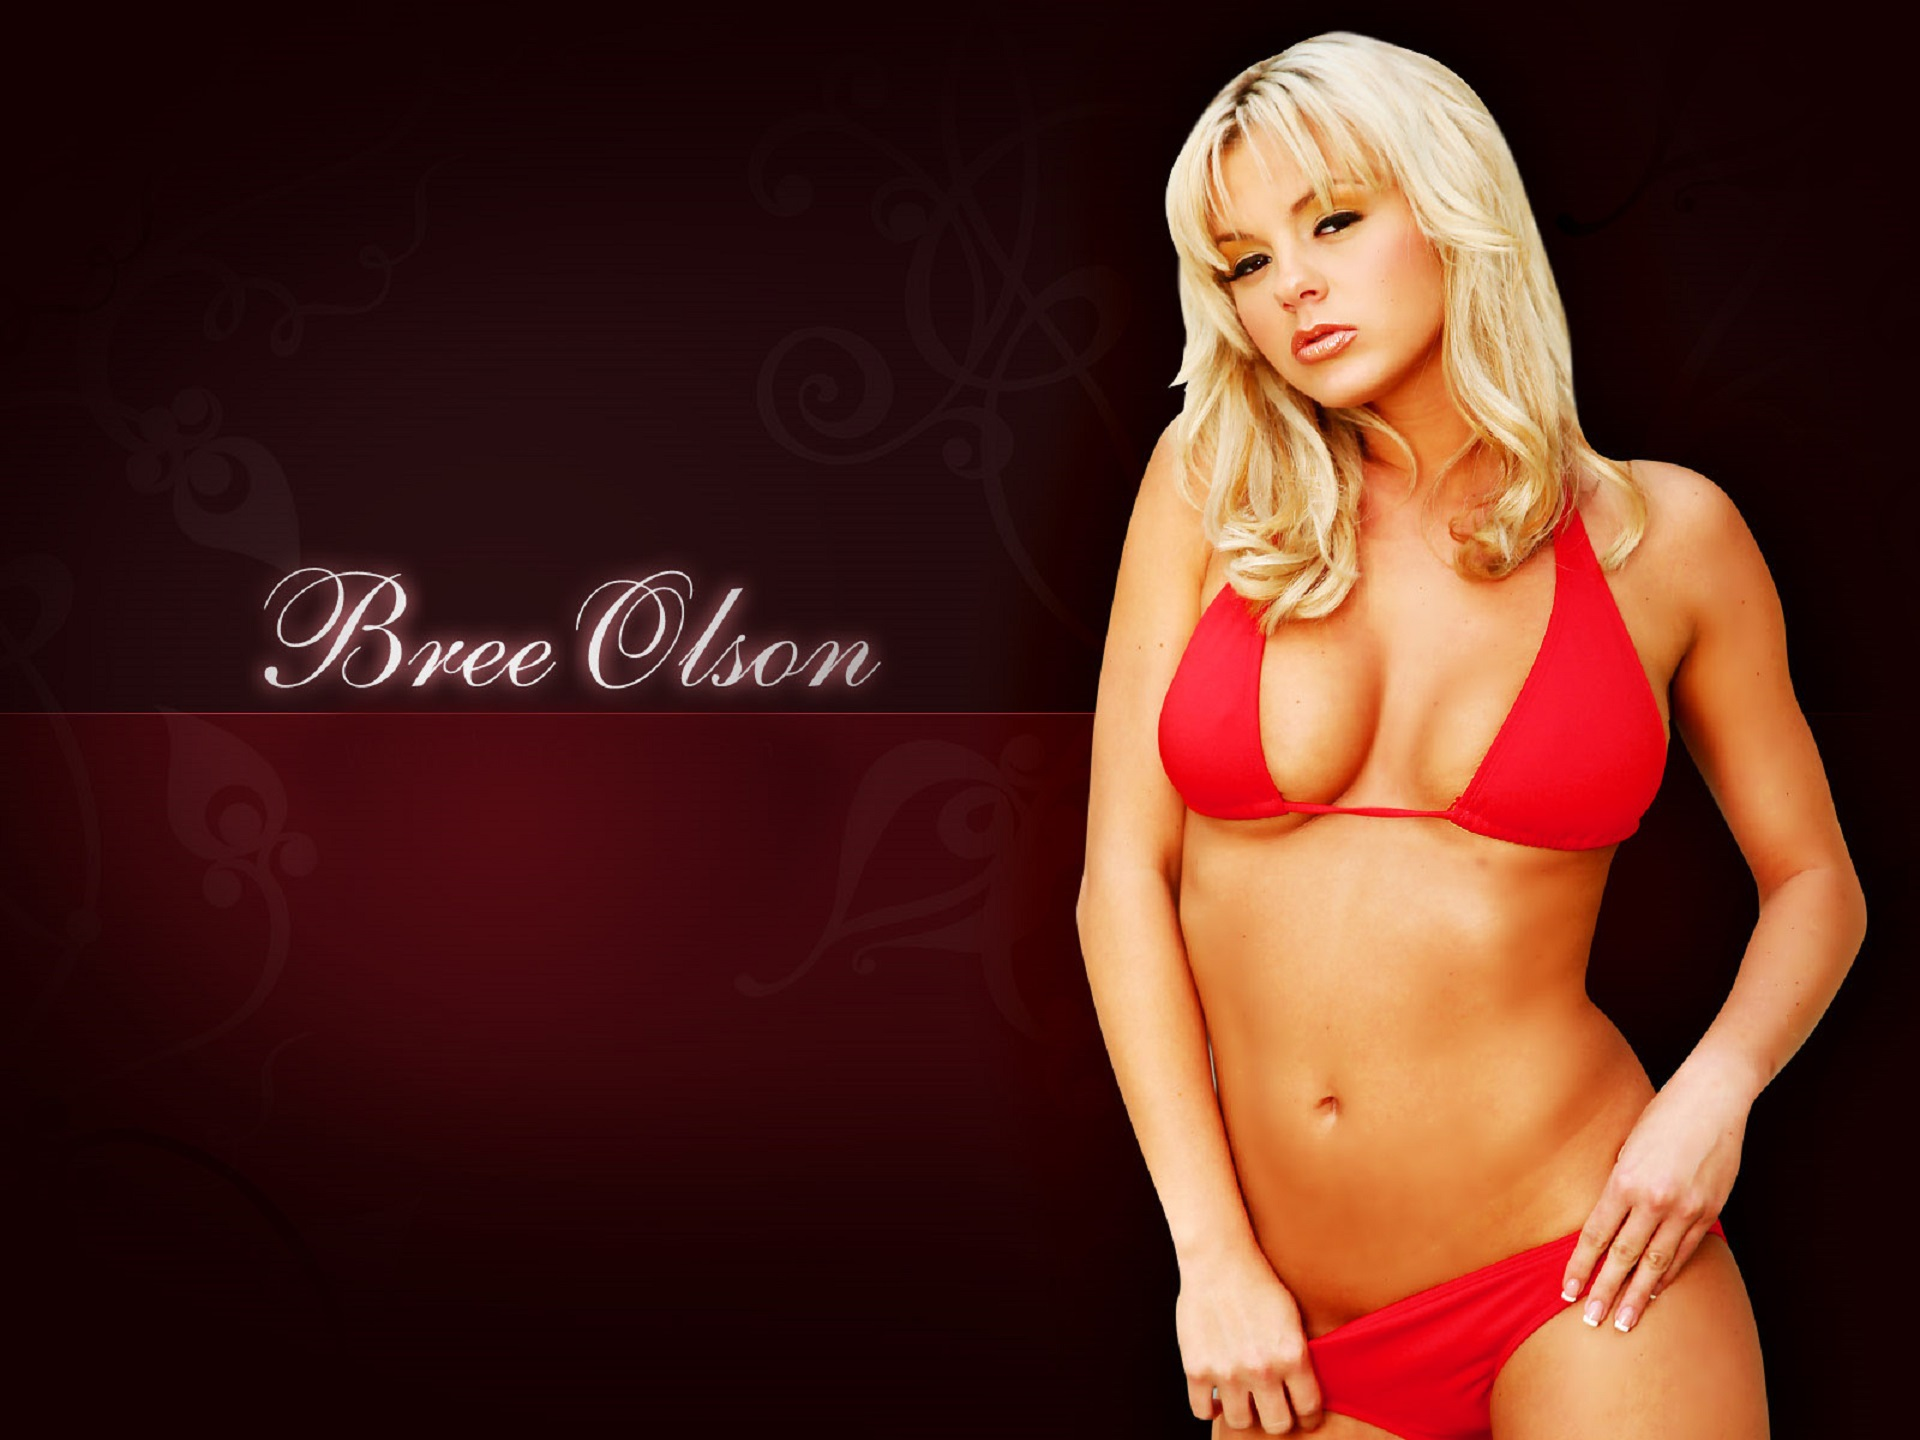 Love the Bree olson hd